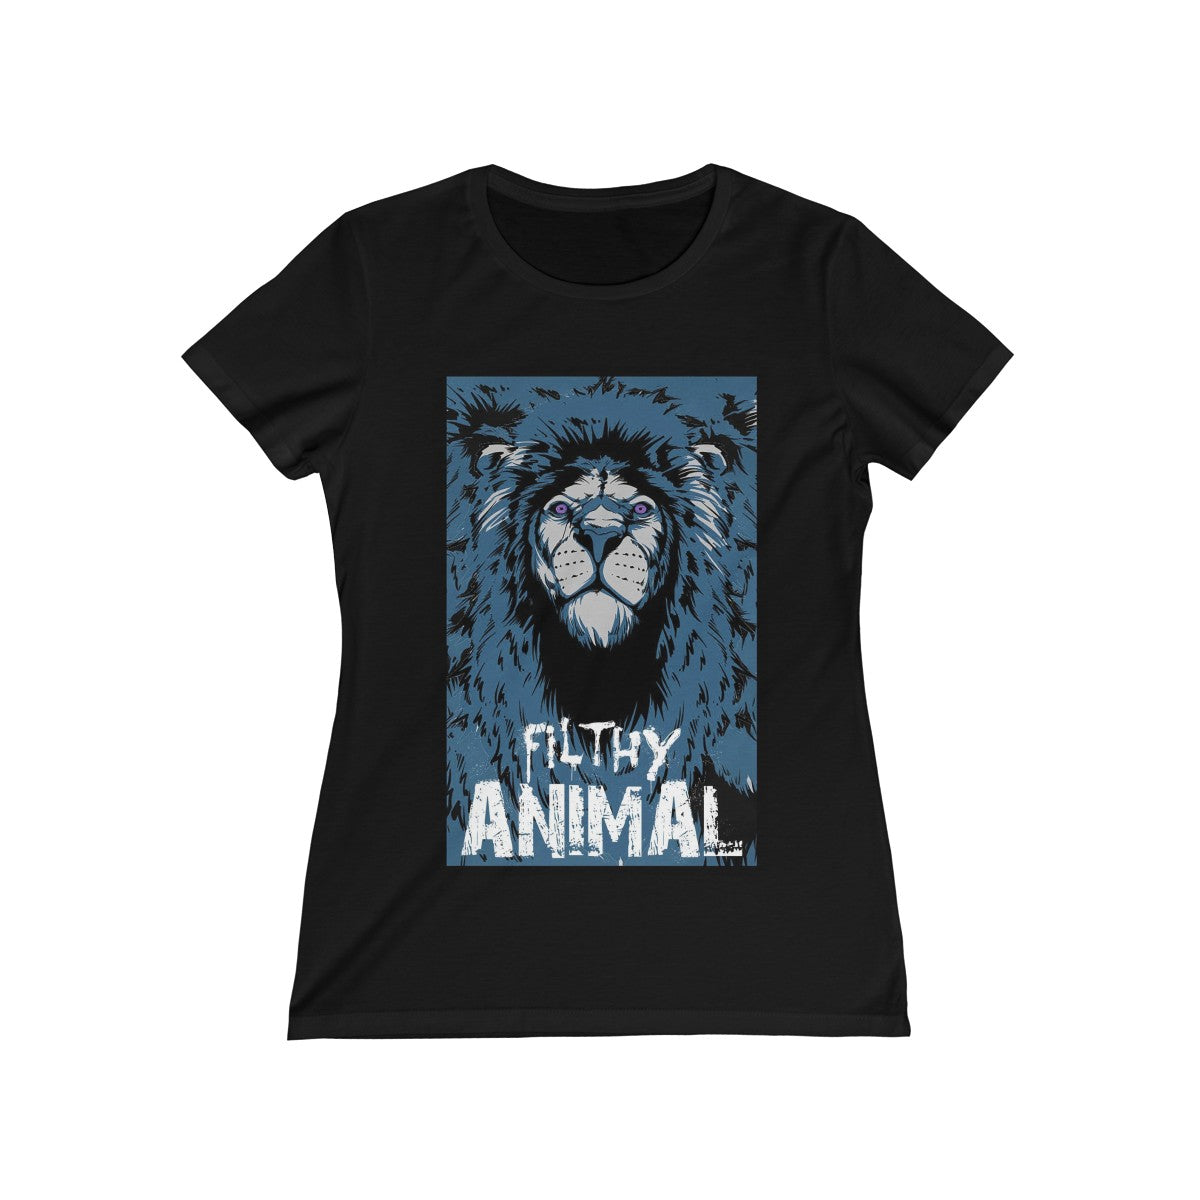 Women's Tee Lion King